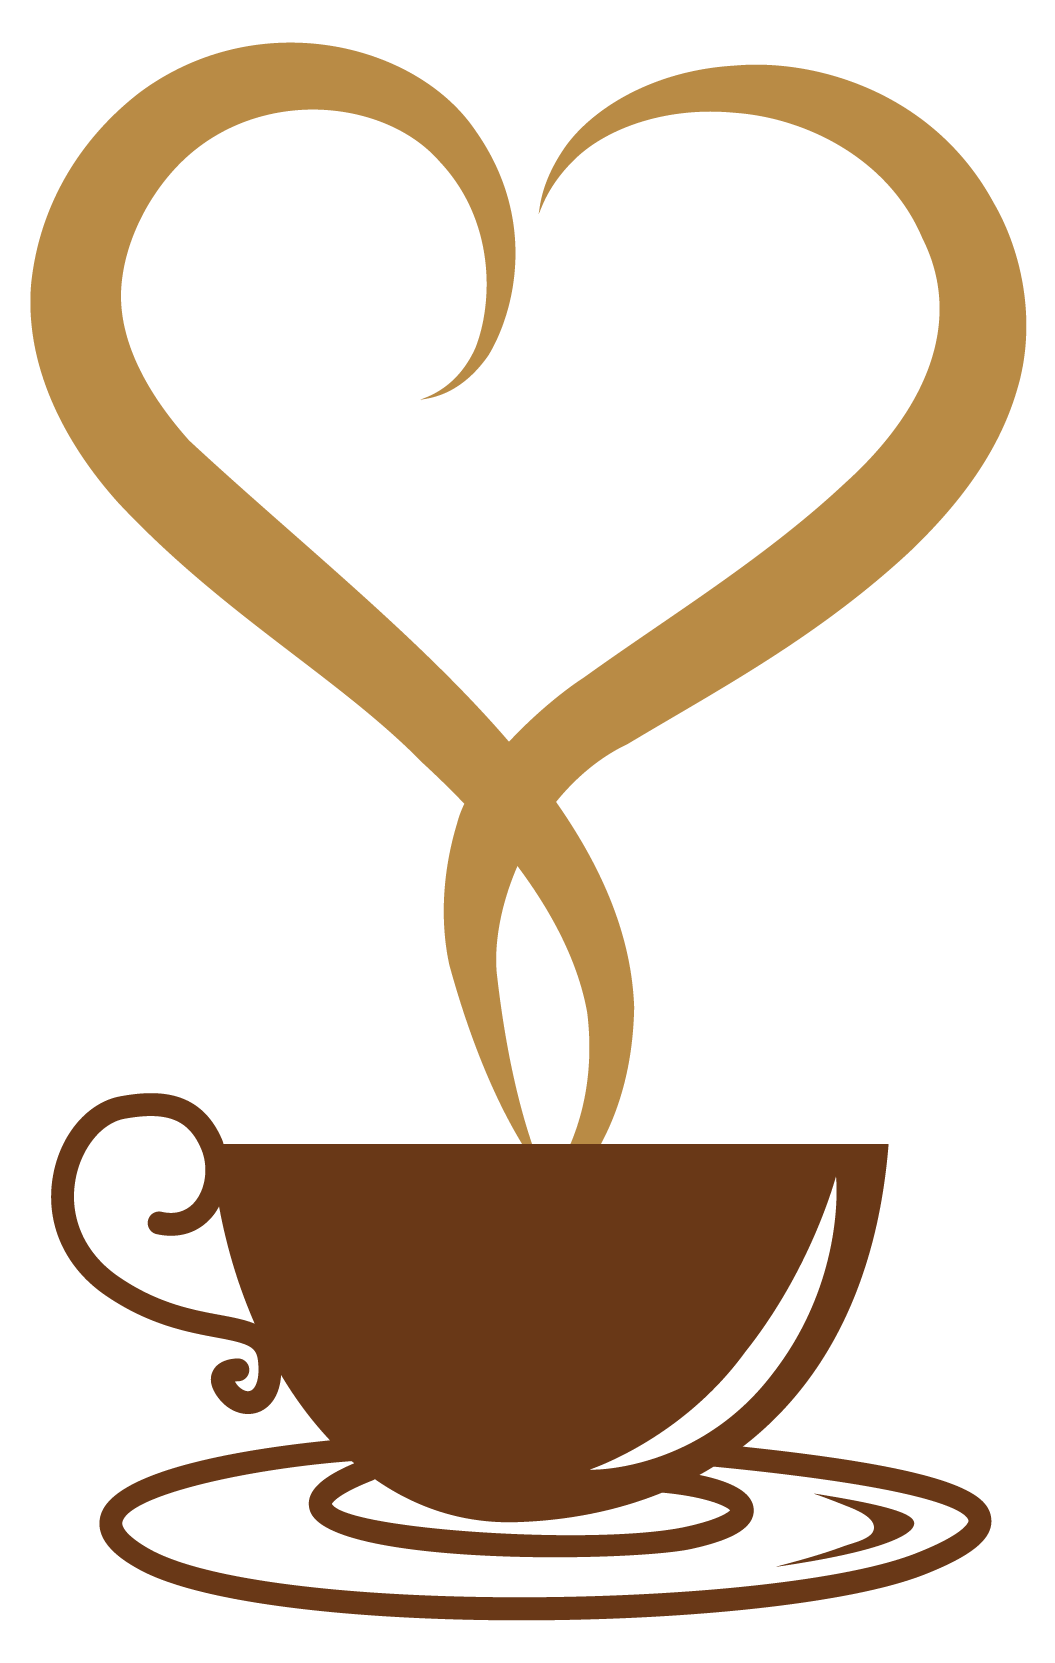 Starbucks clipart design. Coffee cup top pictures